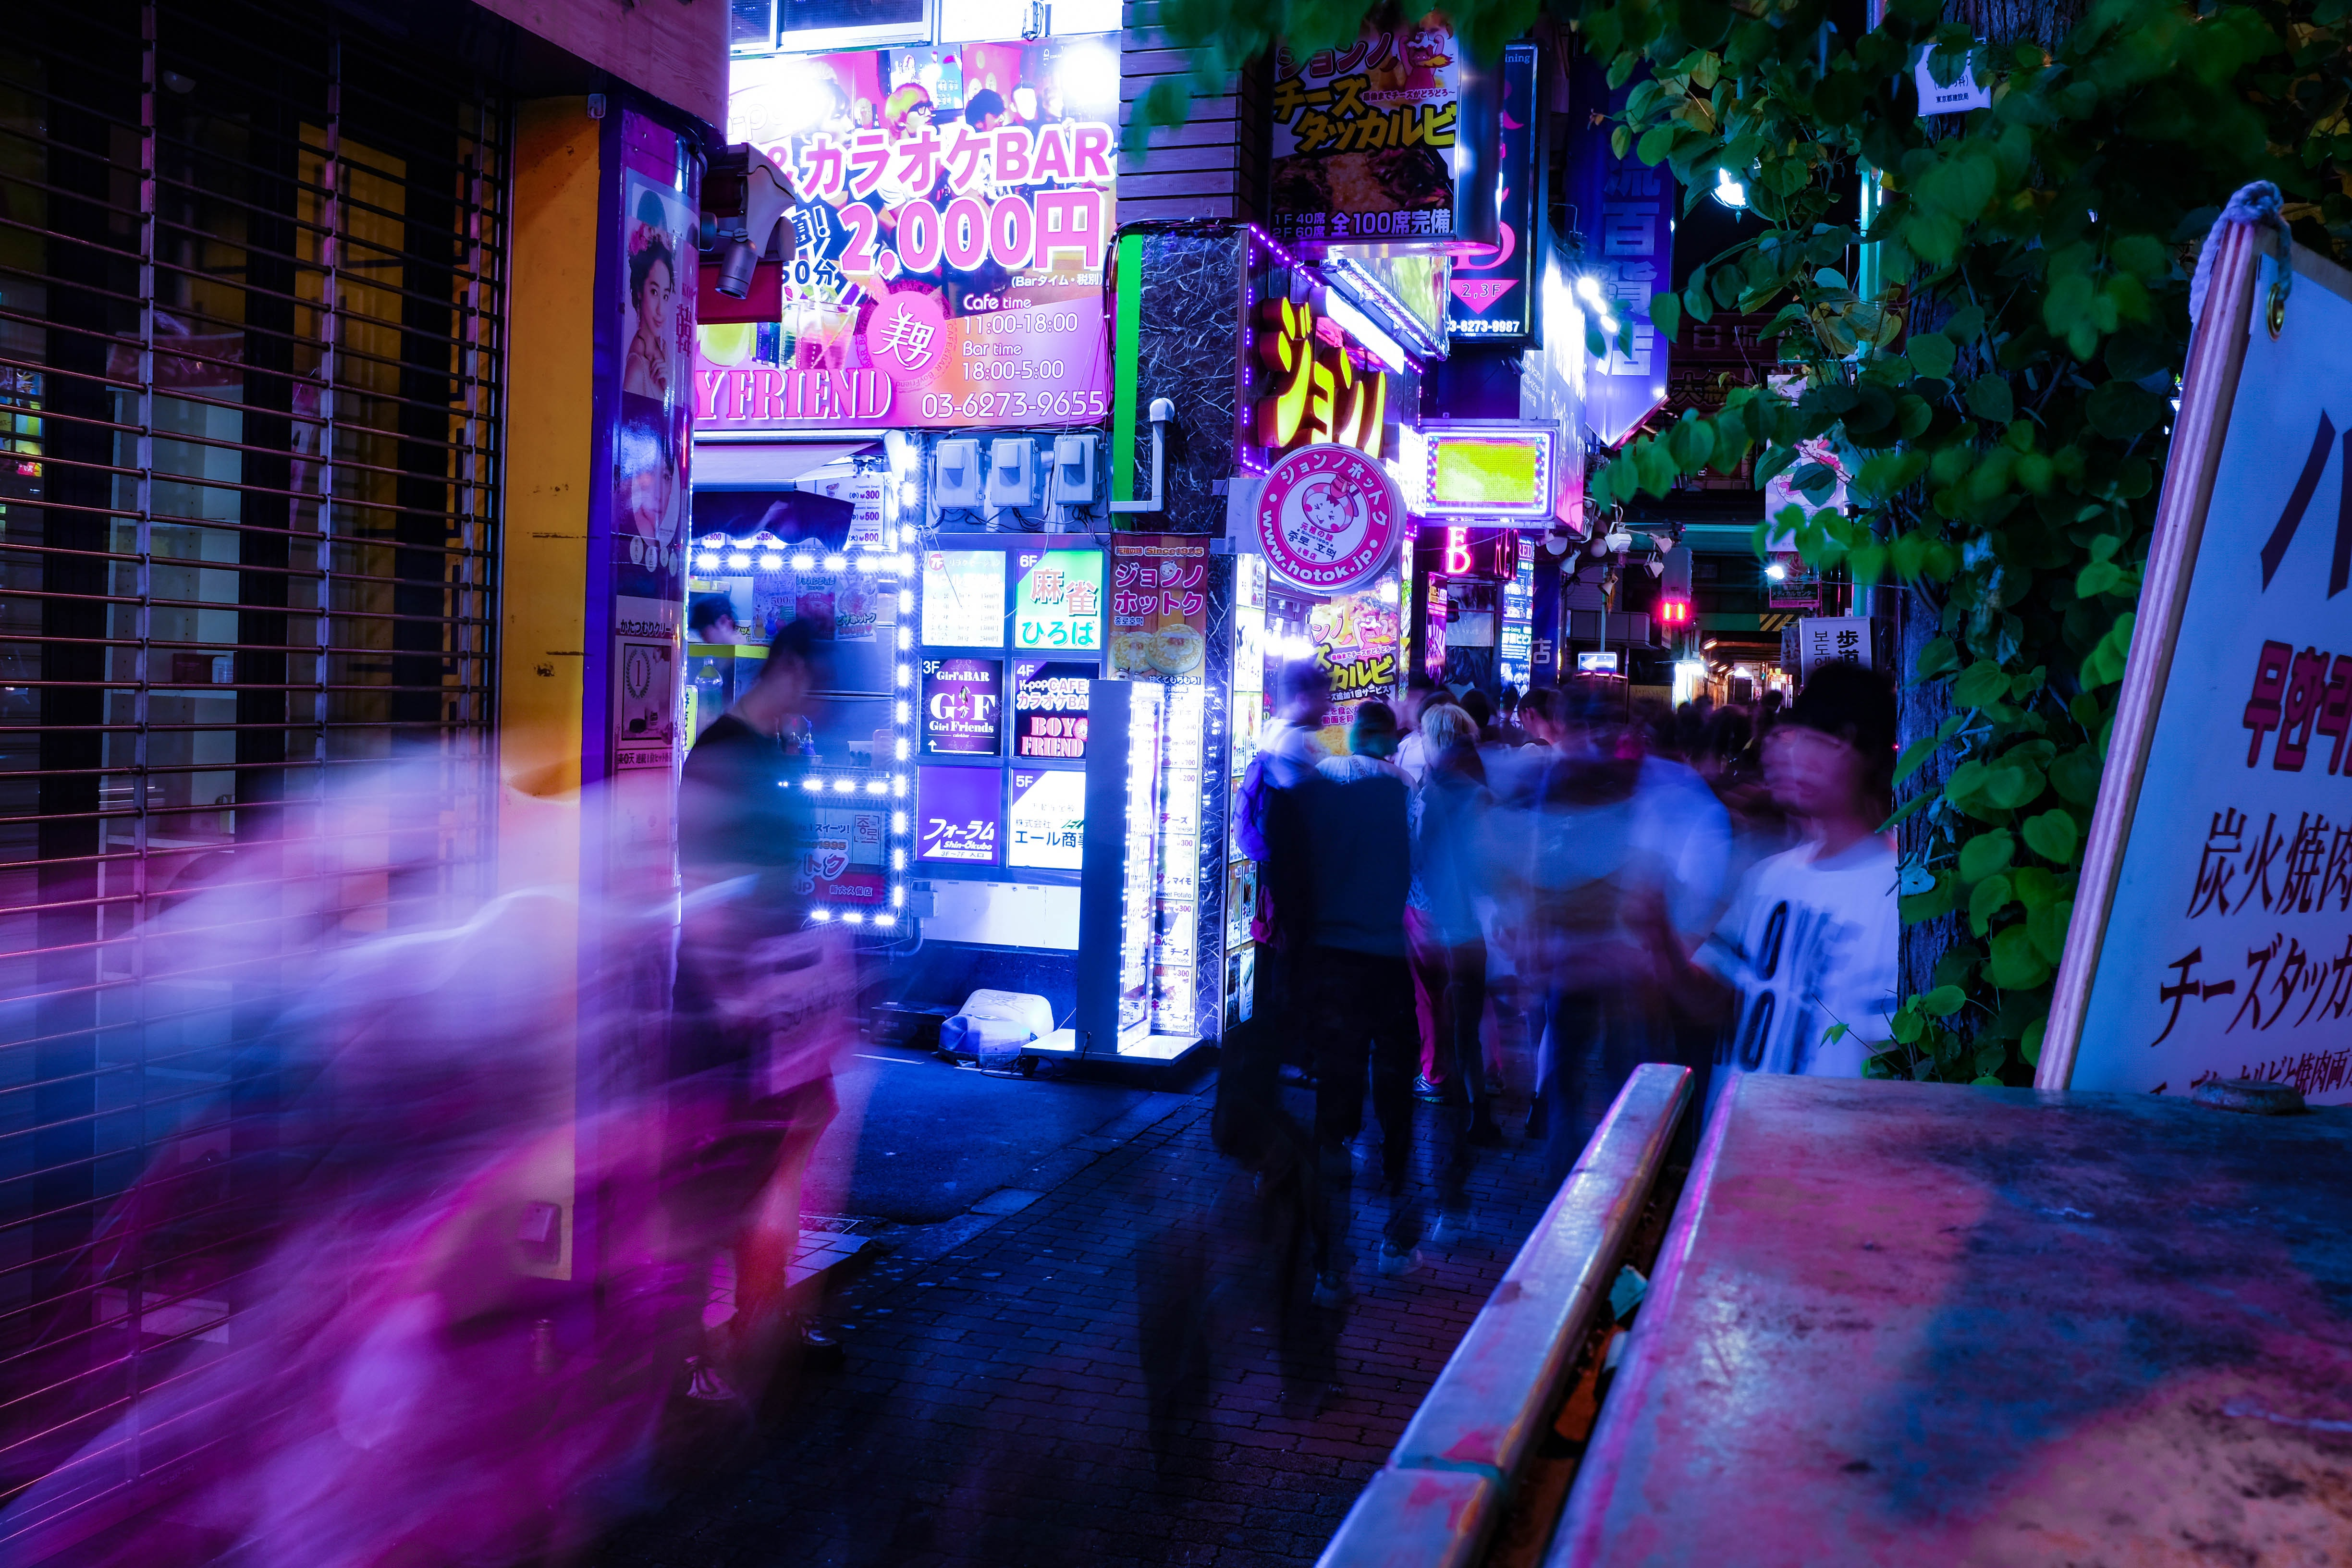 Long exposure of people walking in a city near bright shop signs